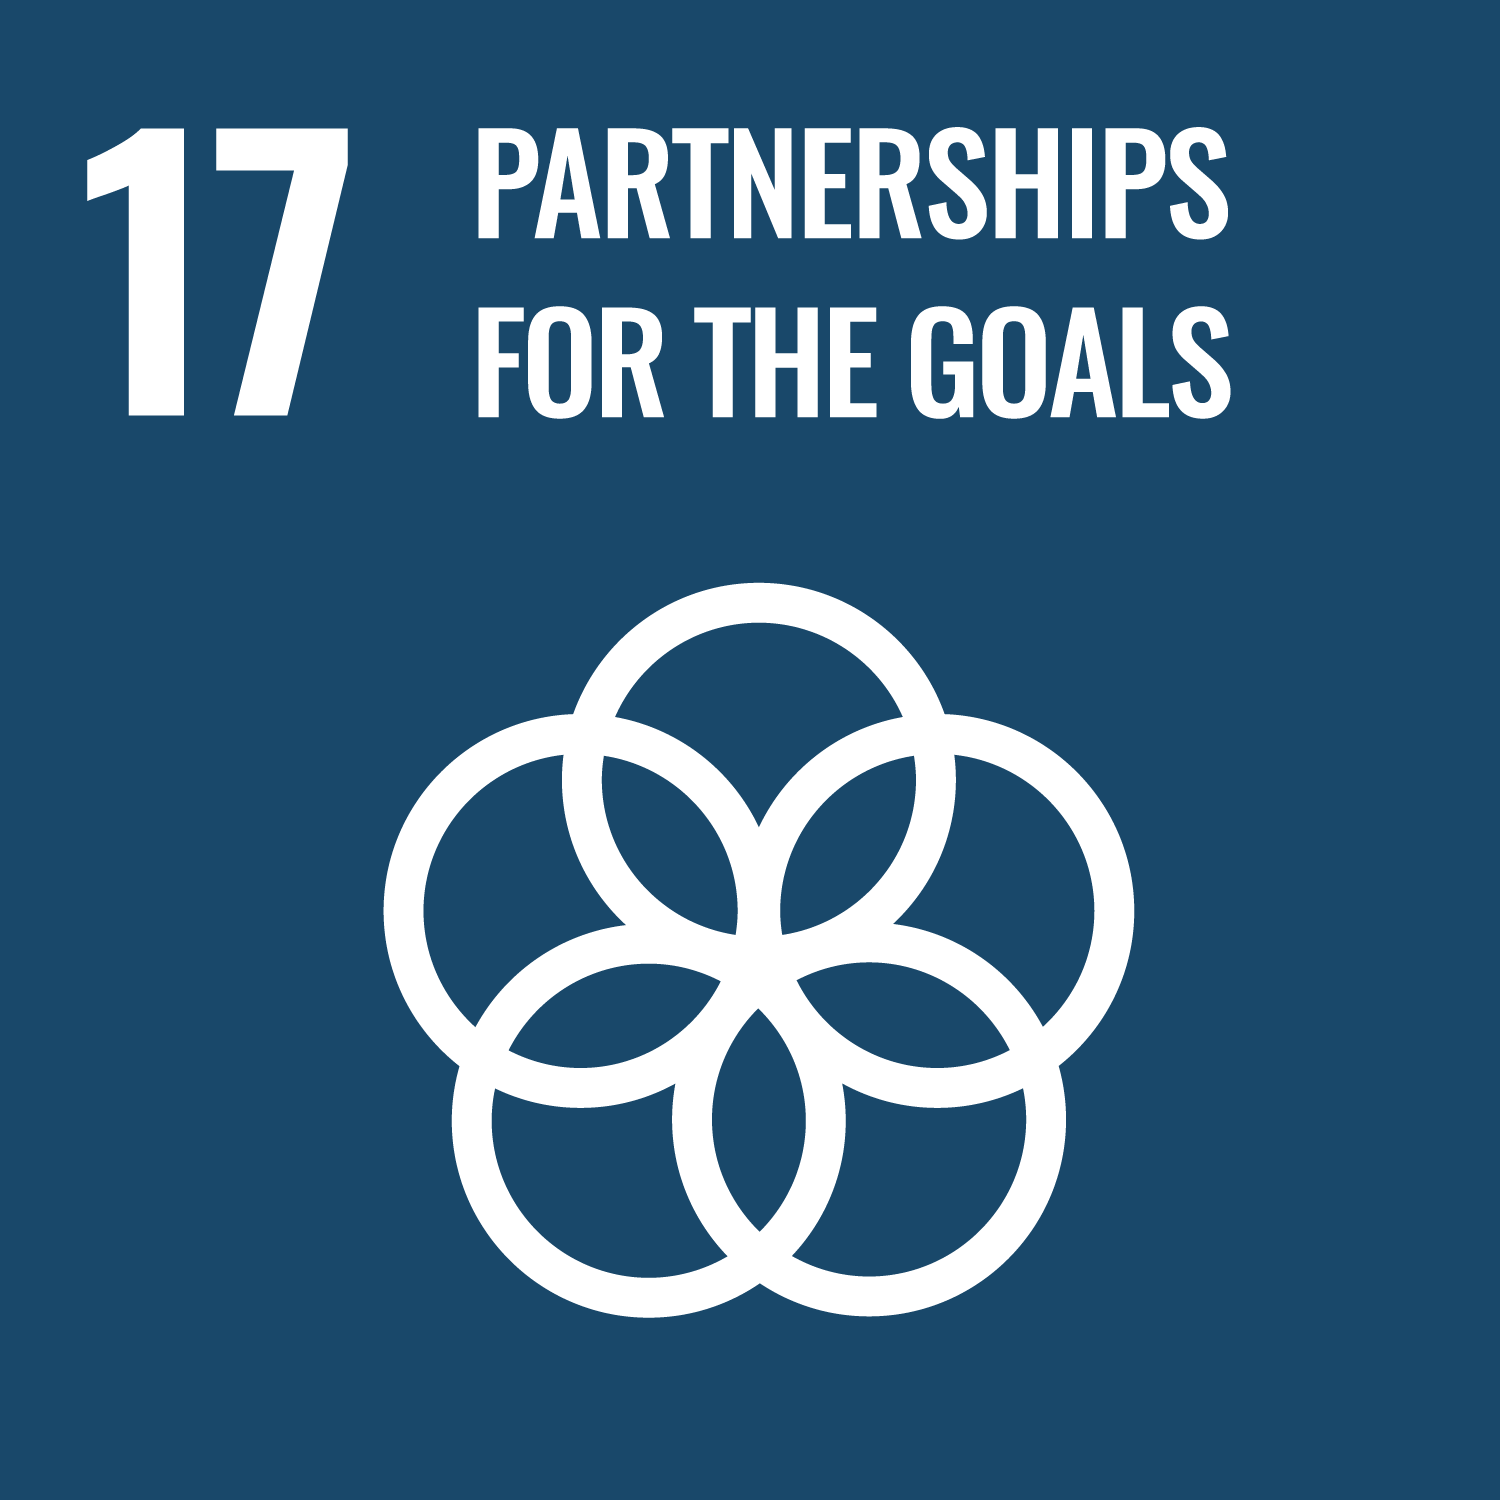 17. PARTNERSHIPS FOR THE GOALS